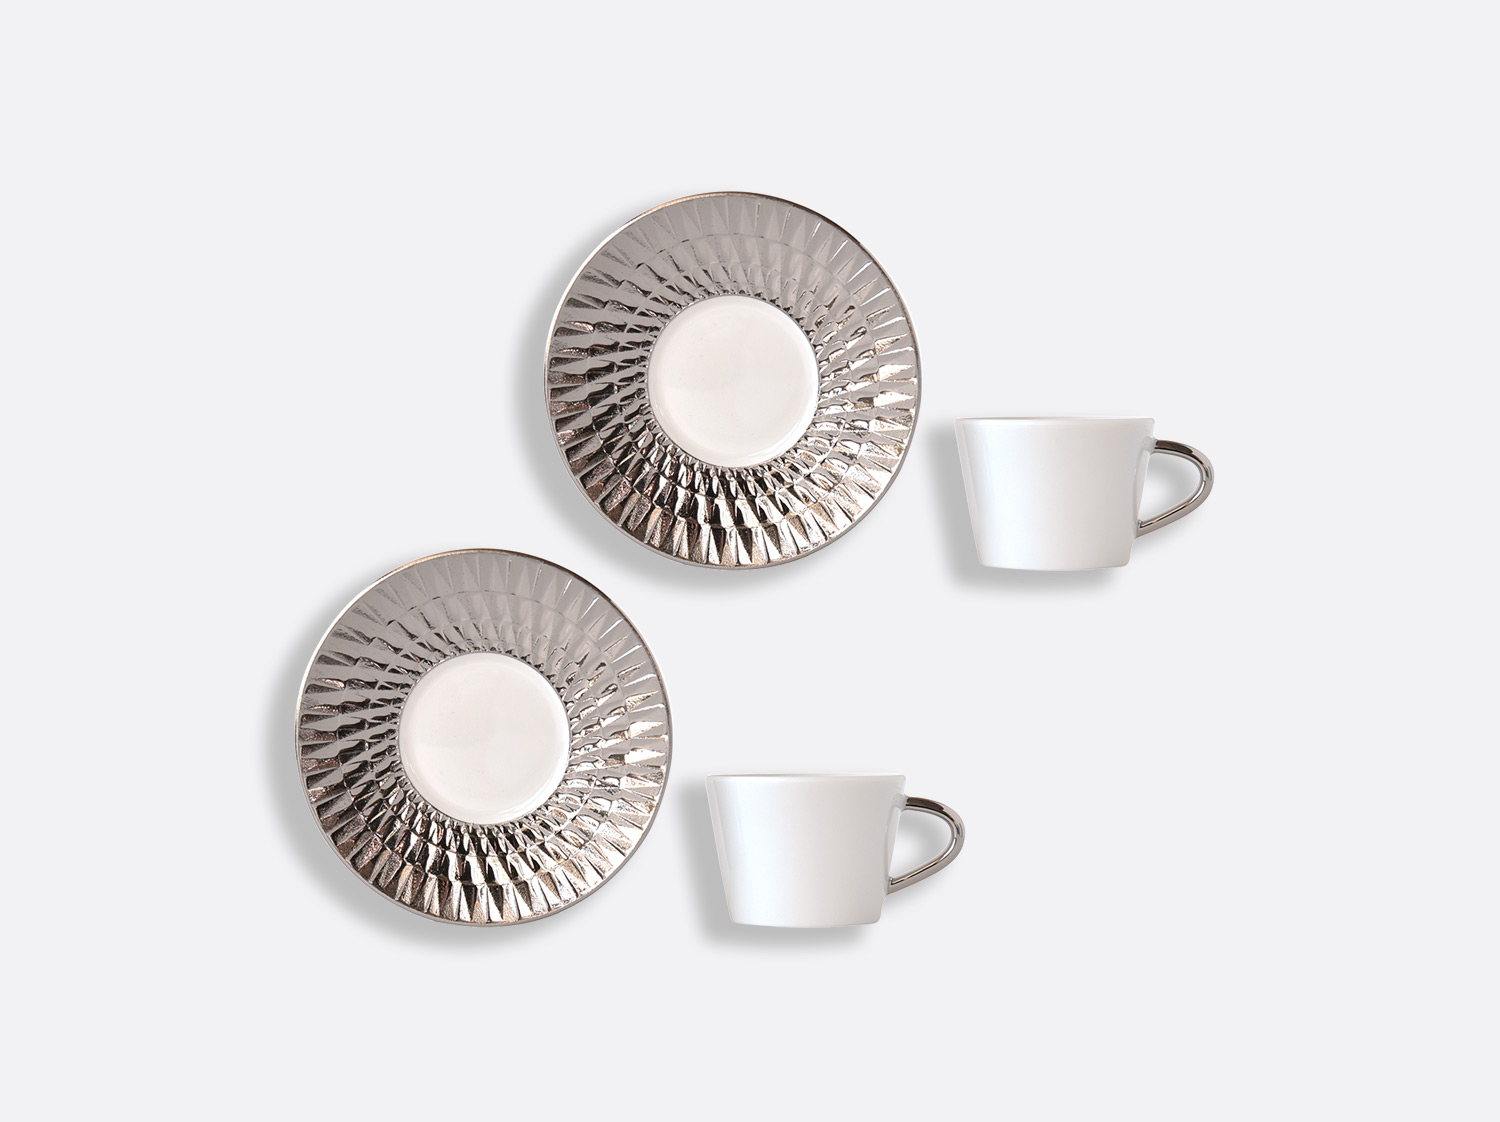 Coffret de tasses & soucoupes café 8 cl - Coffret de 2 en porcelaine de la collection Twist platine Bernardaud